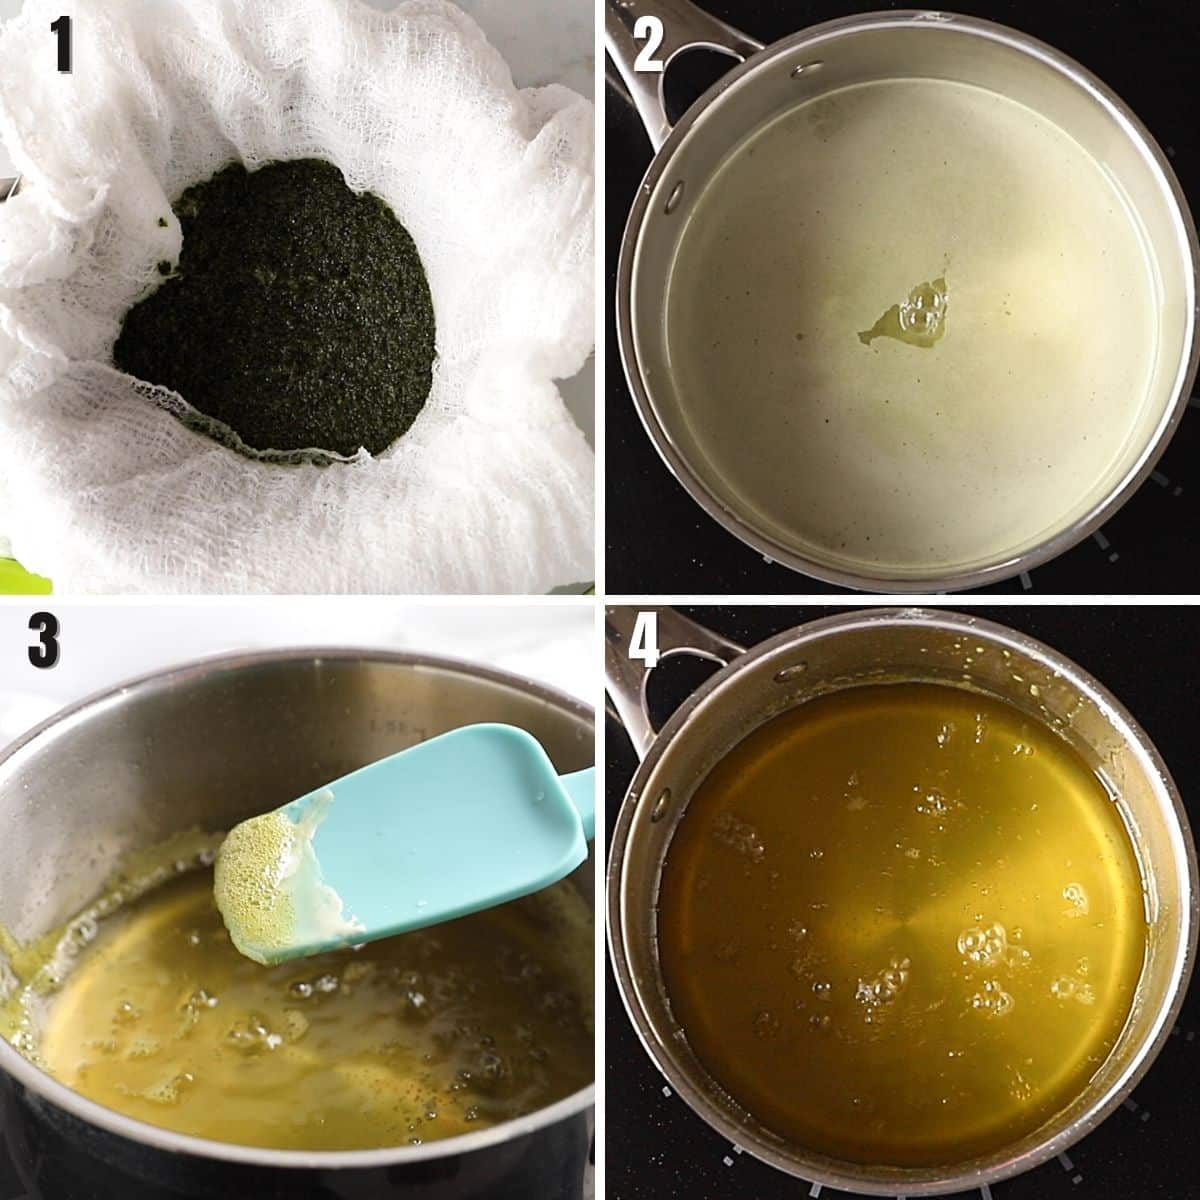 A collage of 4 images showing how to strain and clarify the liquids to make concentrated mint simple syrup.